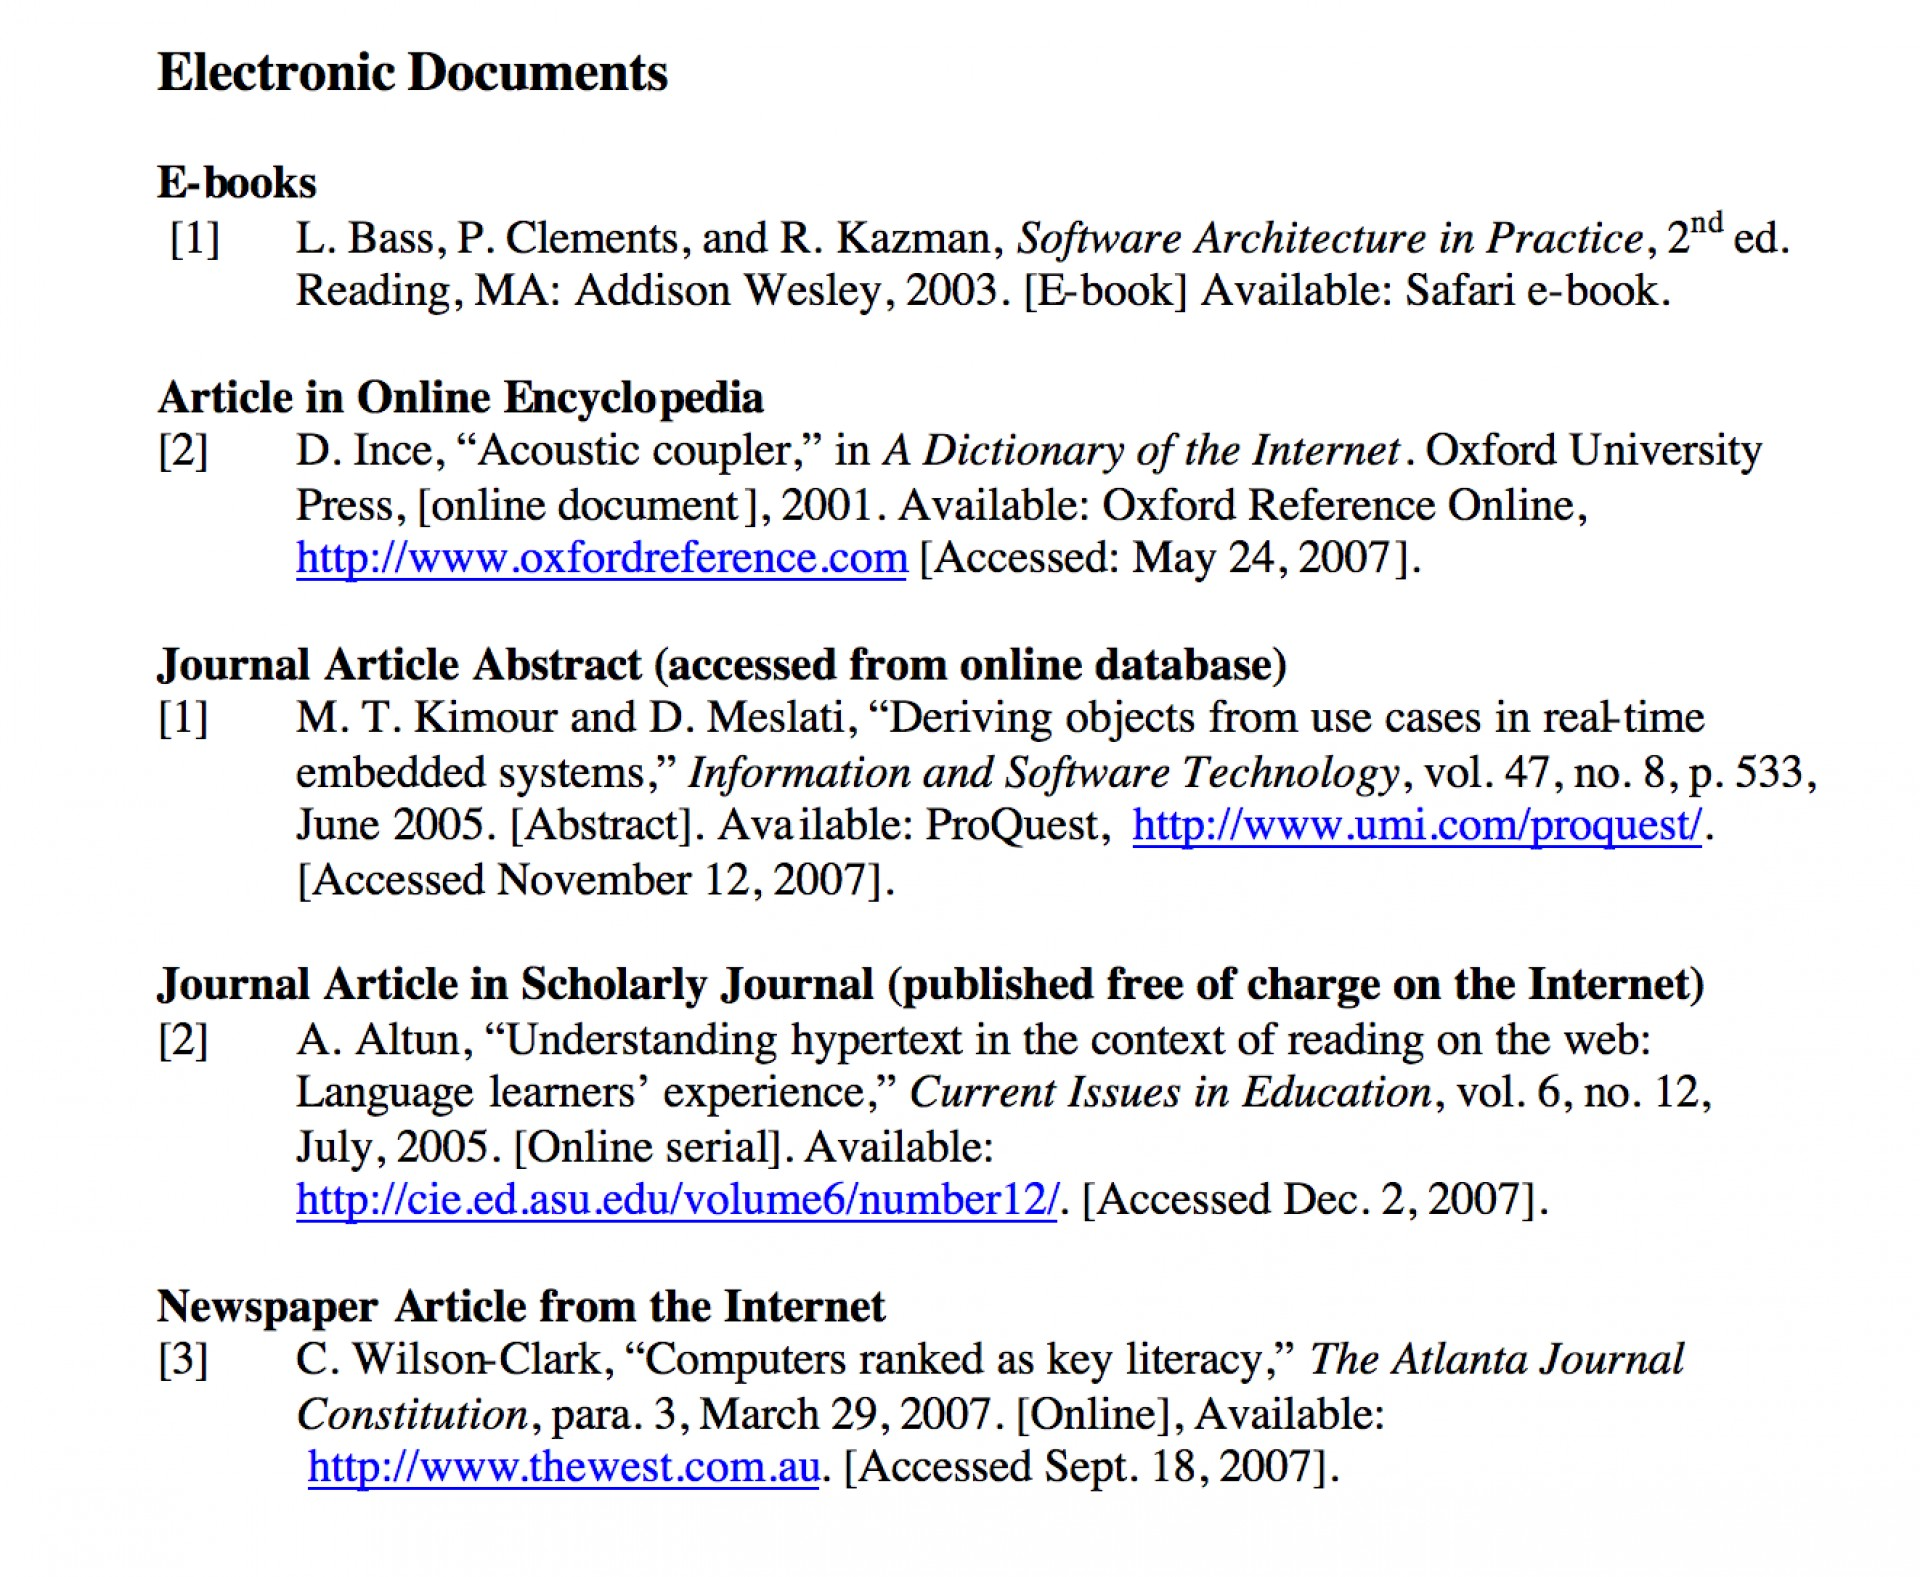 010 Ieee Research Paper Reference Format 1 1528899707 Stunning 1920